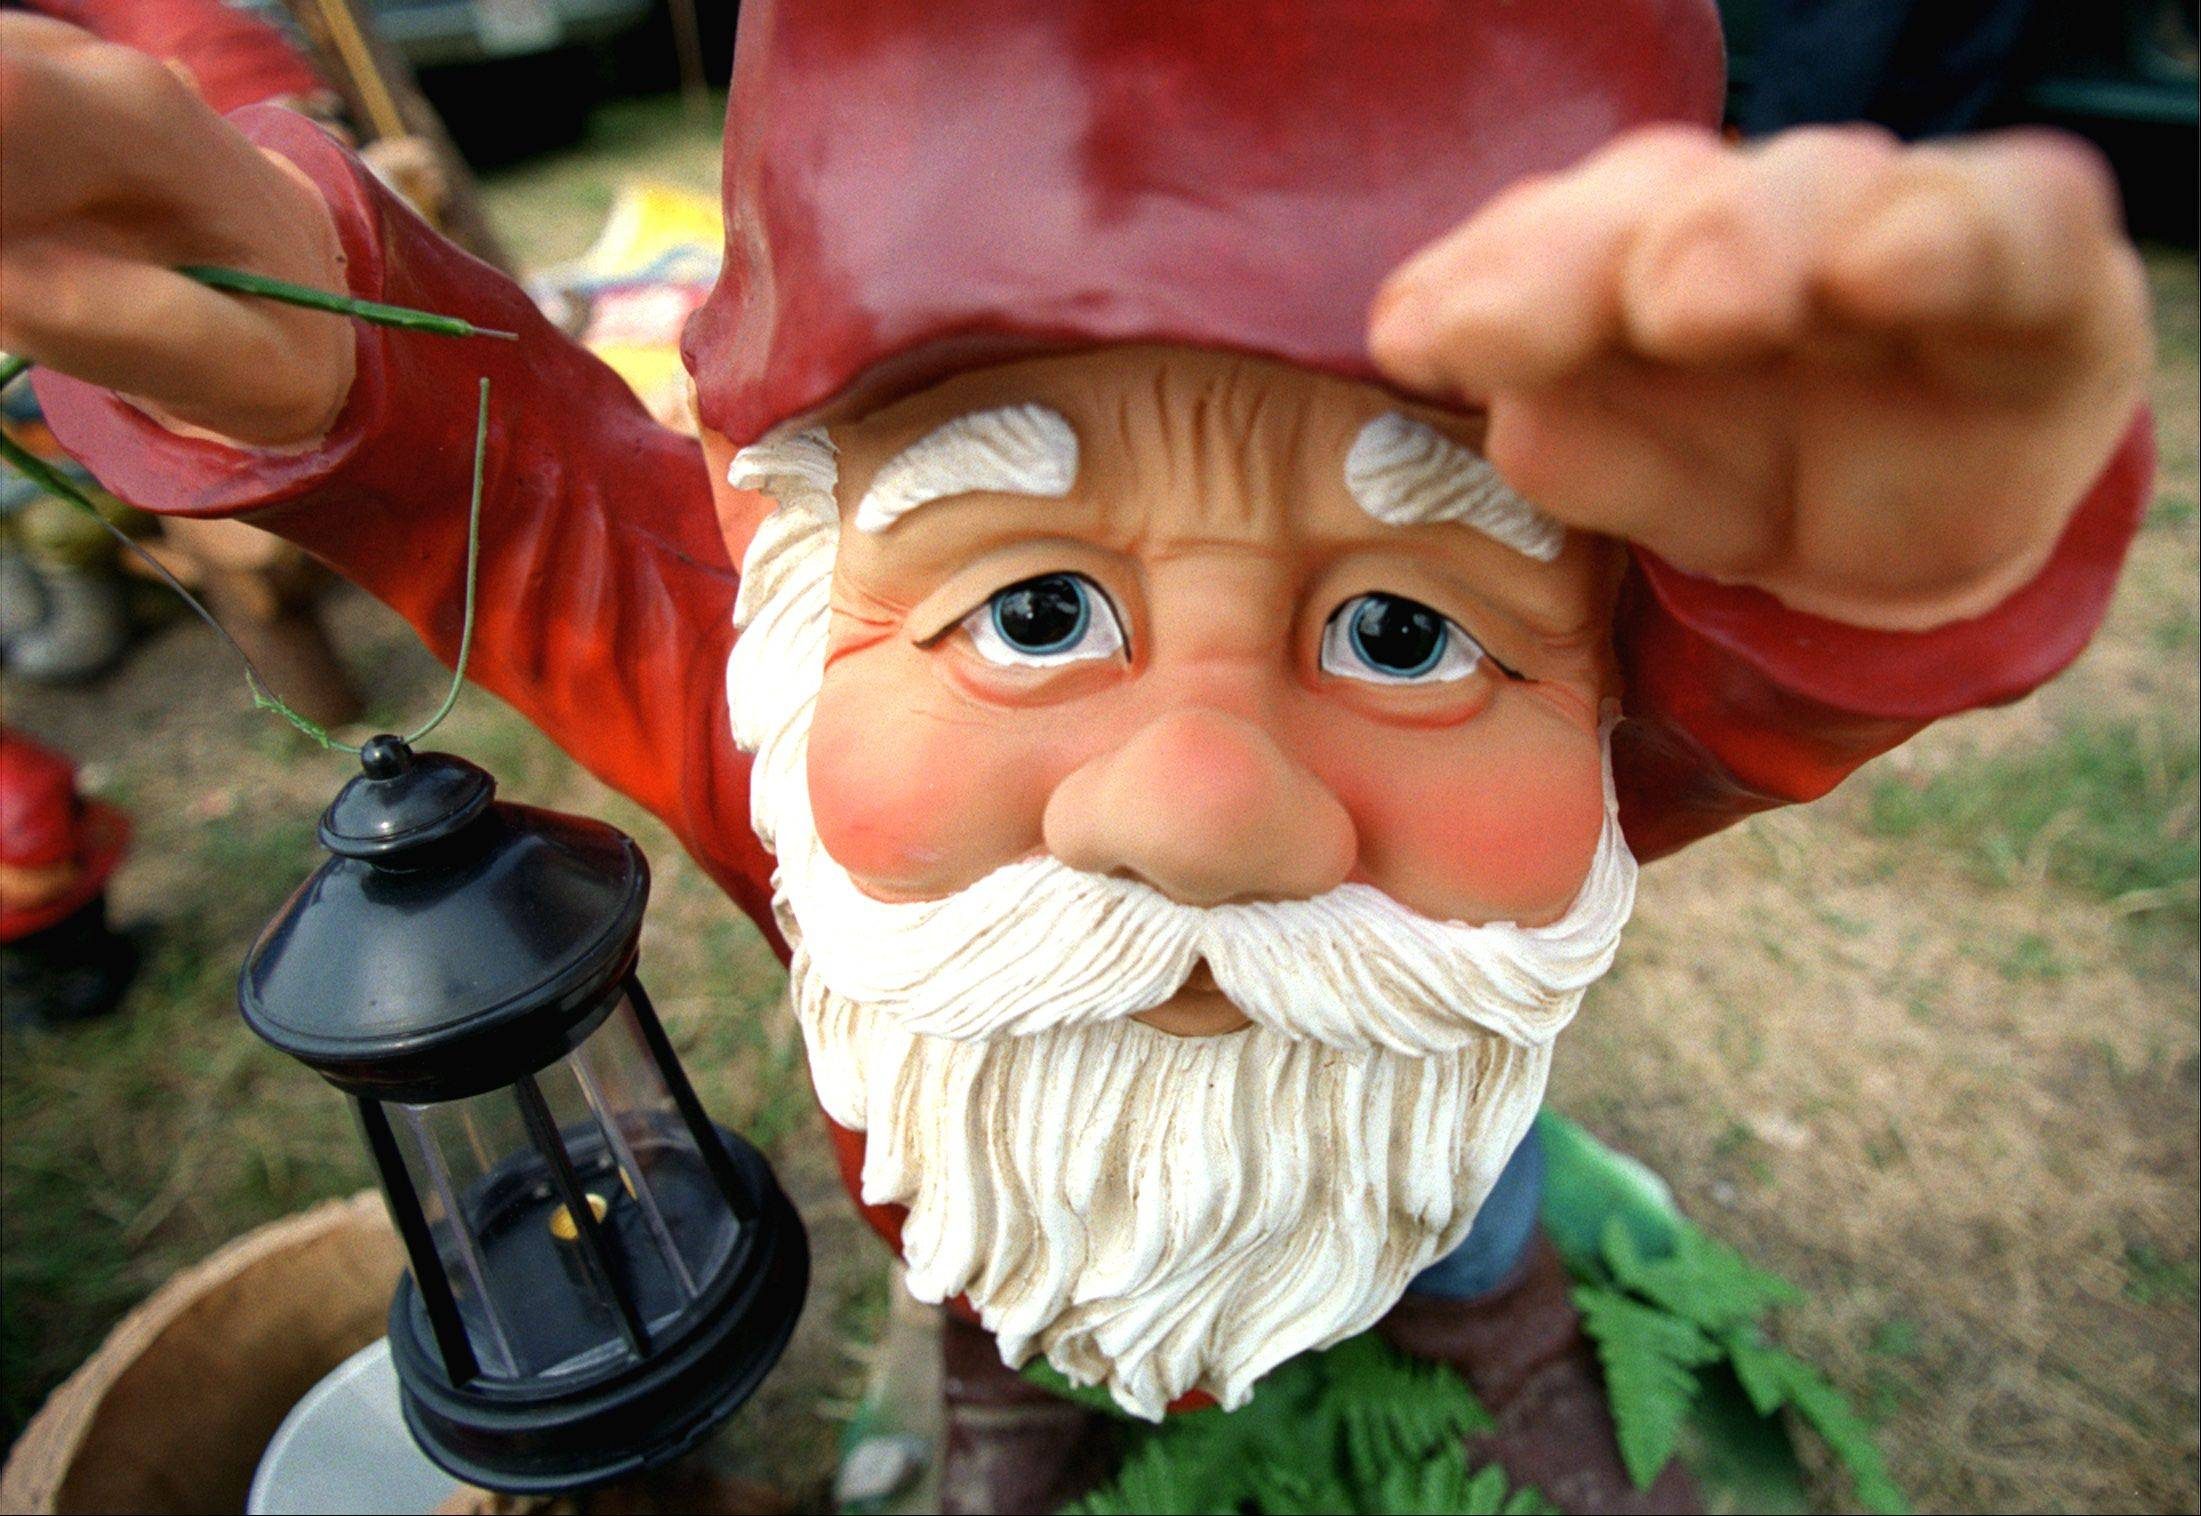 This battery-powered gnome with a working lamp proves that you never know what you might find at the Kane County Flea Market in St. Charles.